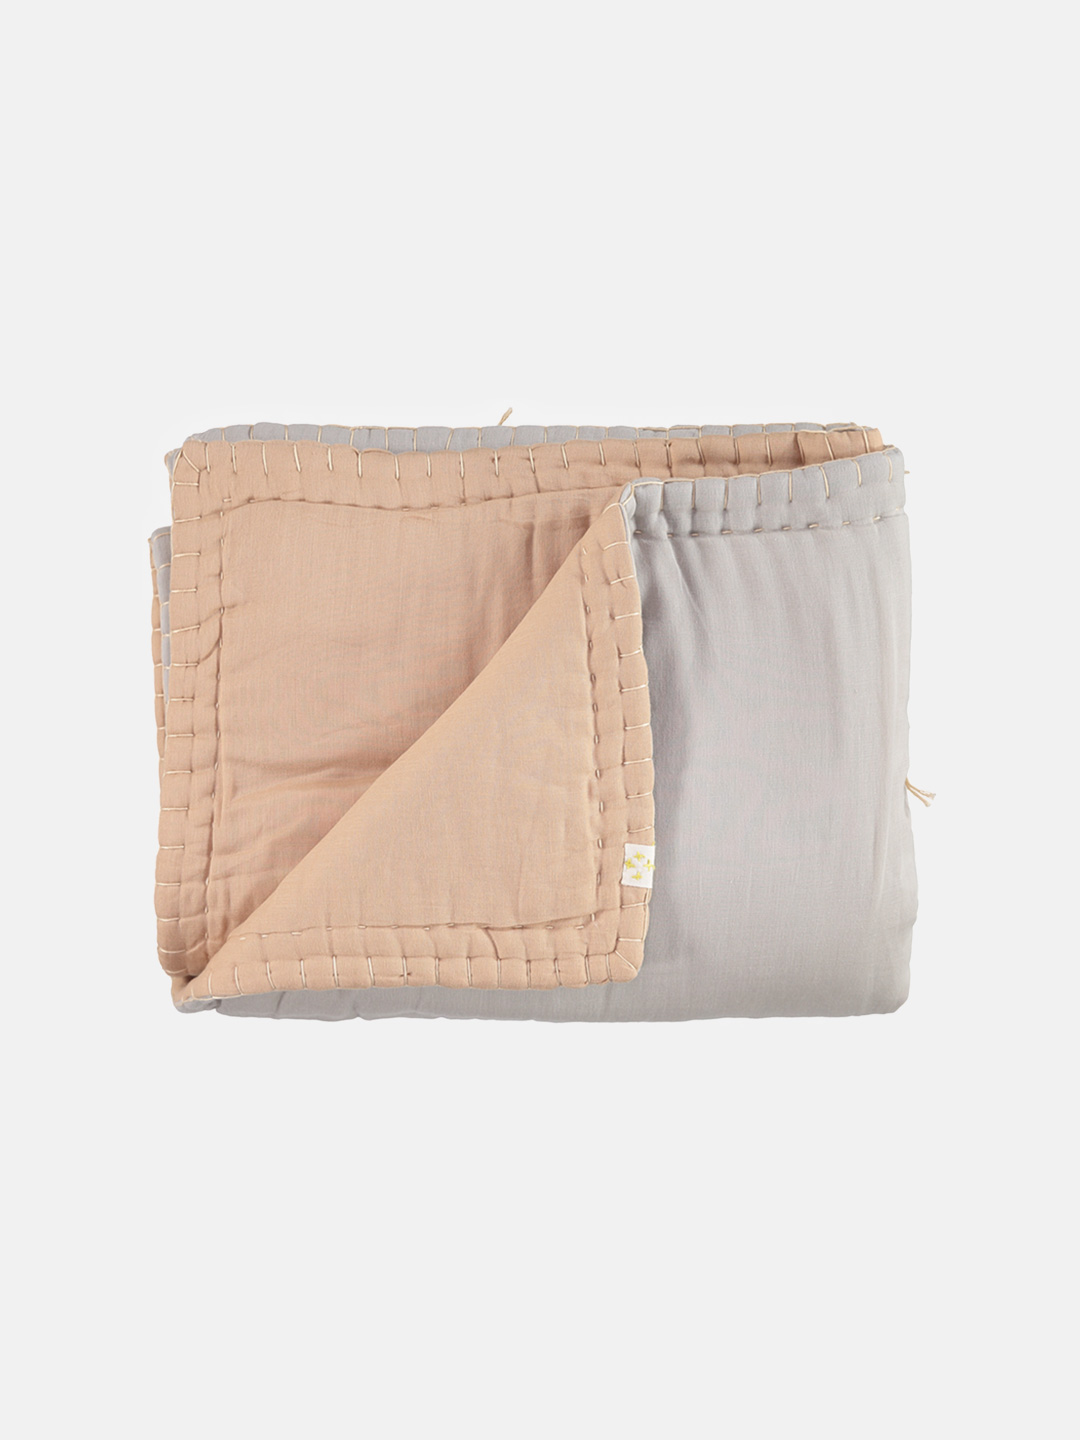 Reversible Embroidered Cotton Quilt Blanket - Peach Blossom & Ash